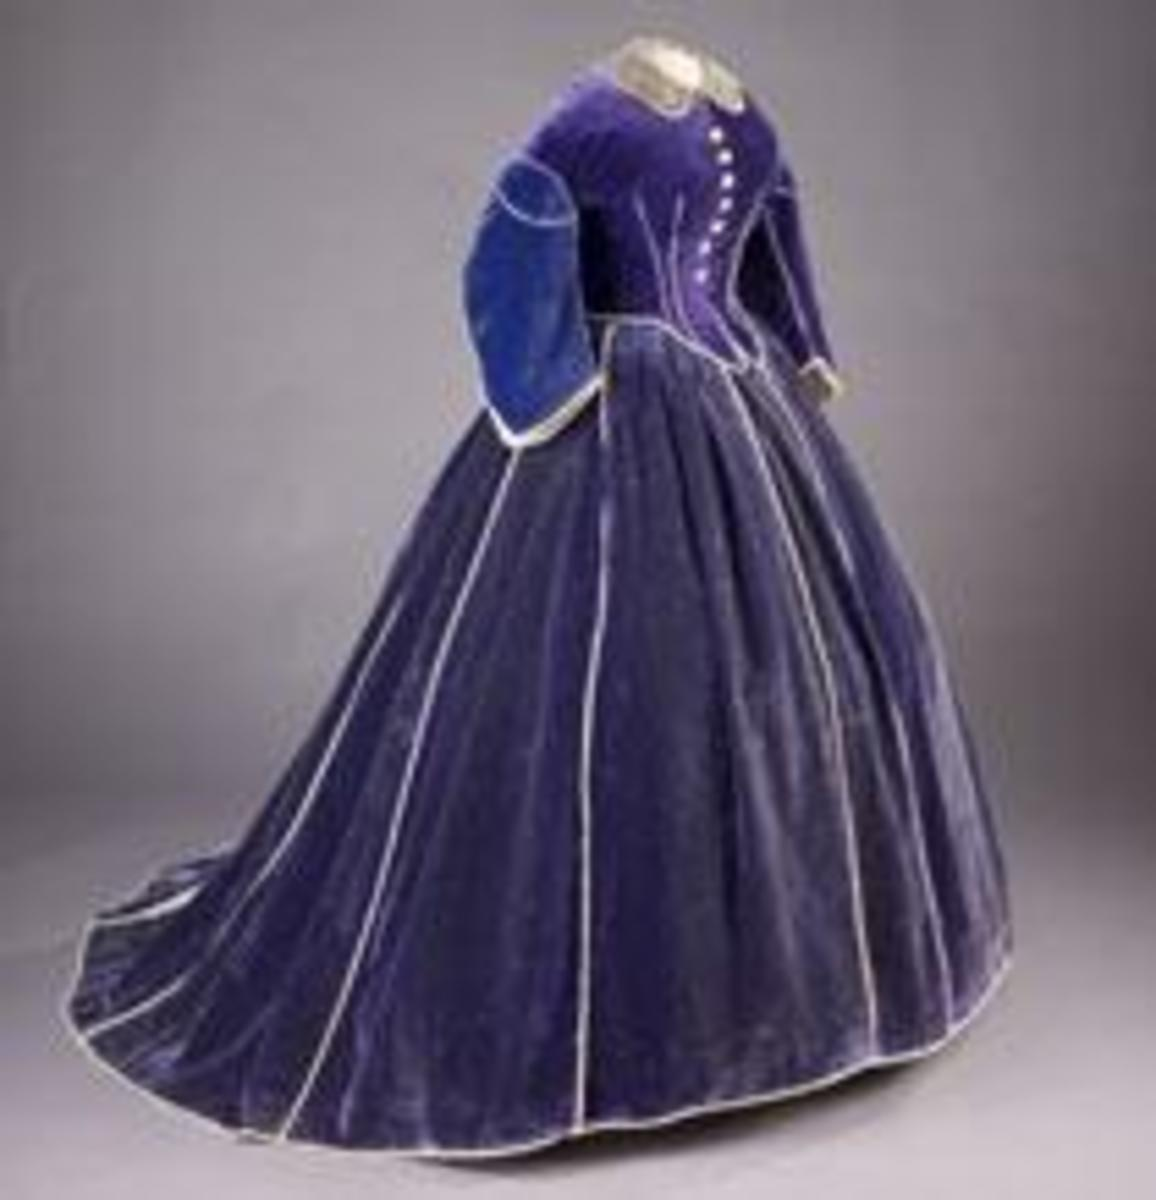 Dress made for Mrs. Lincoln by Elizabeth Keckley. Dress is part of the Smithsonian's First Ladies Collection